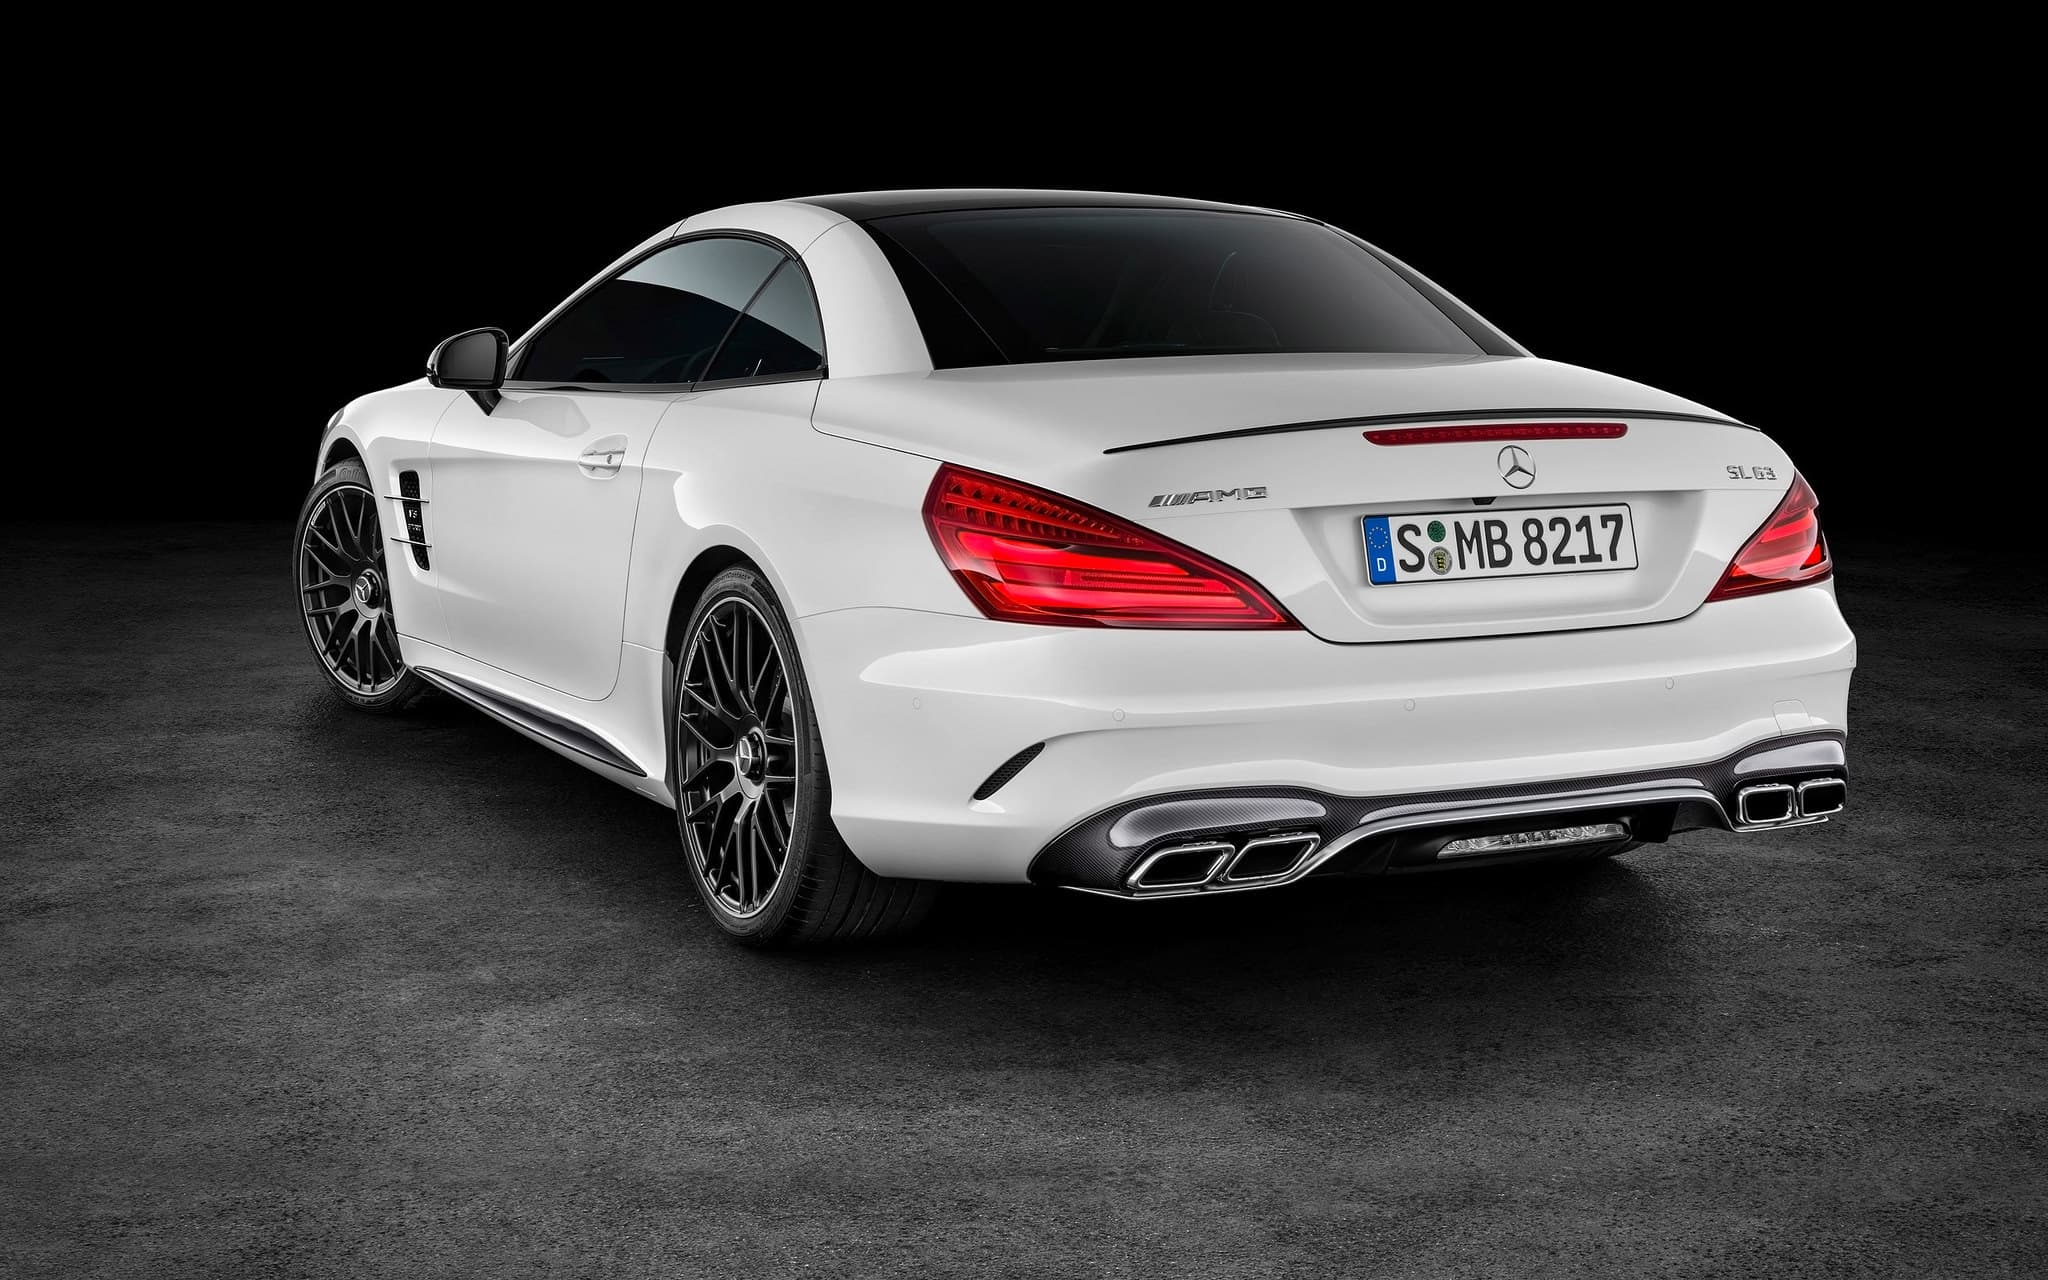 Wallpapers Hd Technology 2016 Mercedes Amg Sl63 Wallpapers High Resolution Download